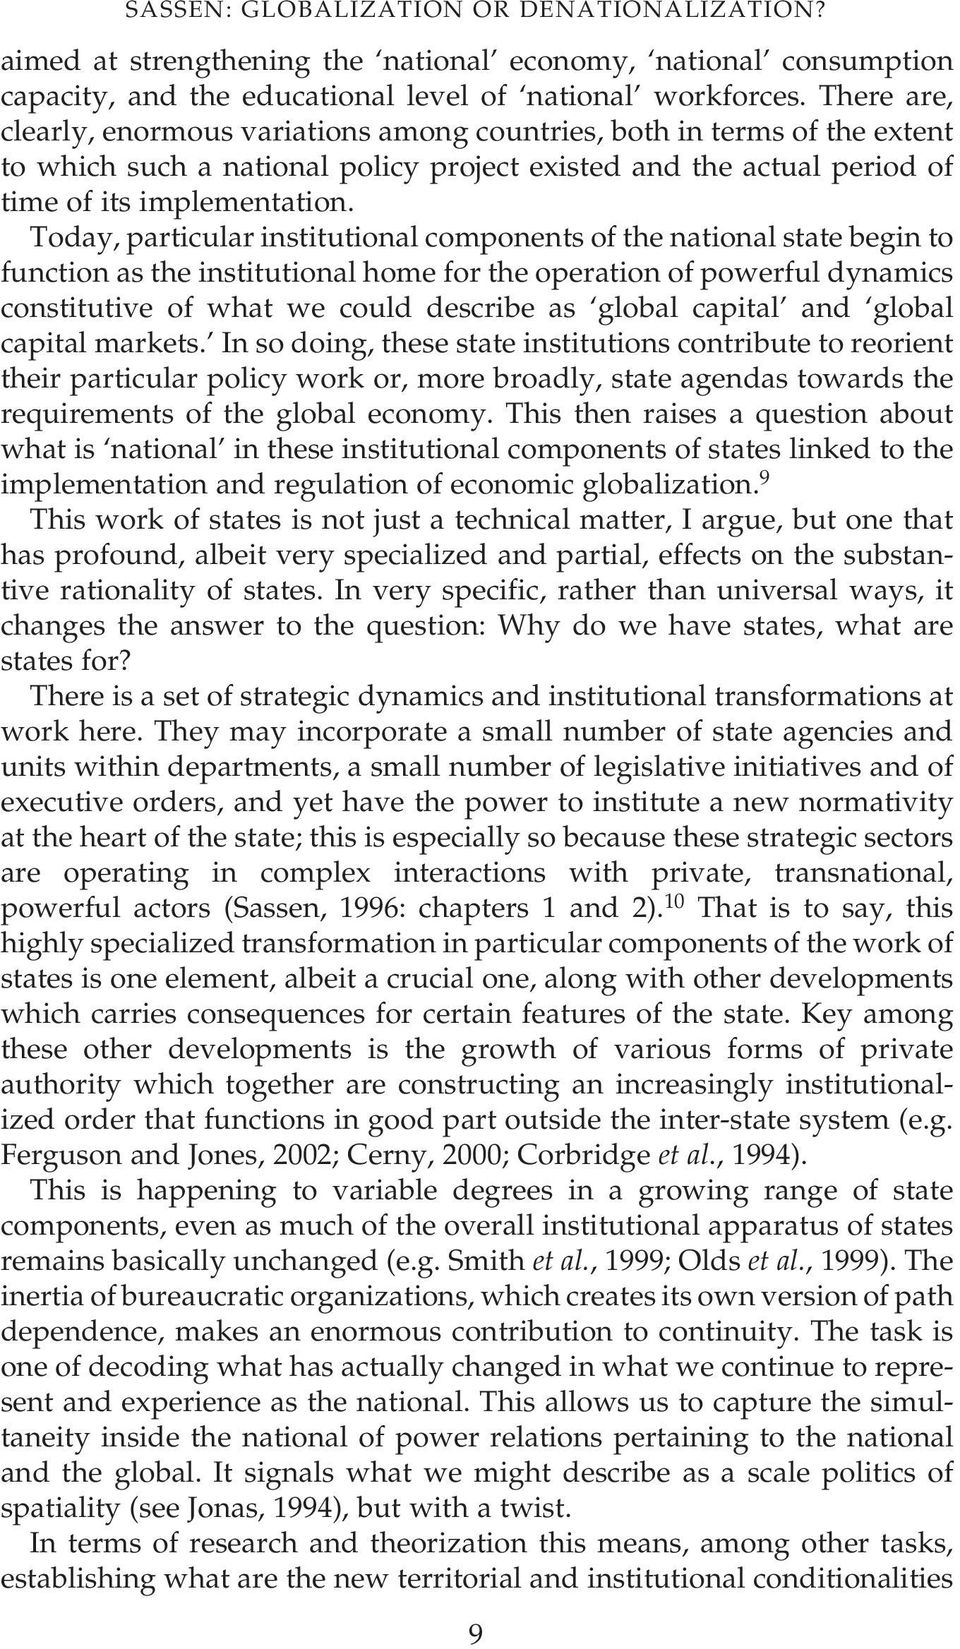 Today, particular institutional components of the national state begin to function as the institutional home for the operation of powerful dynamics constitutive of what we could describe as global